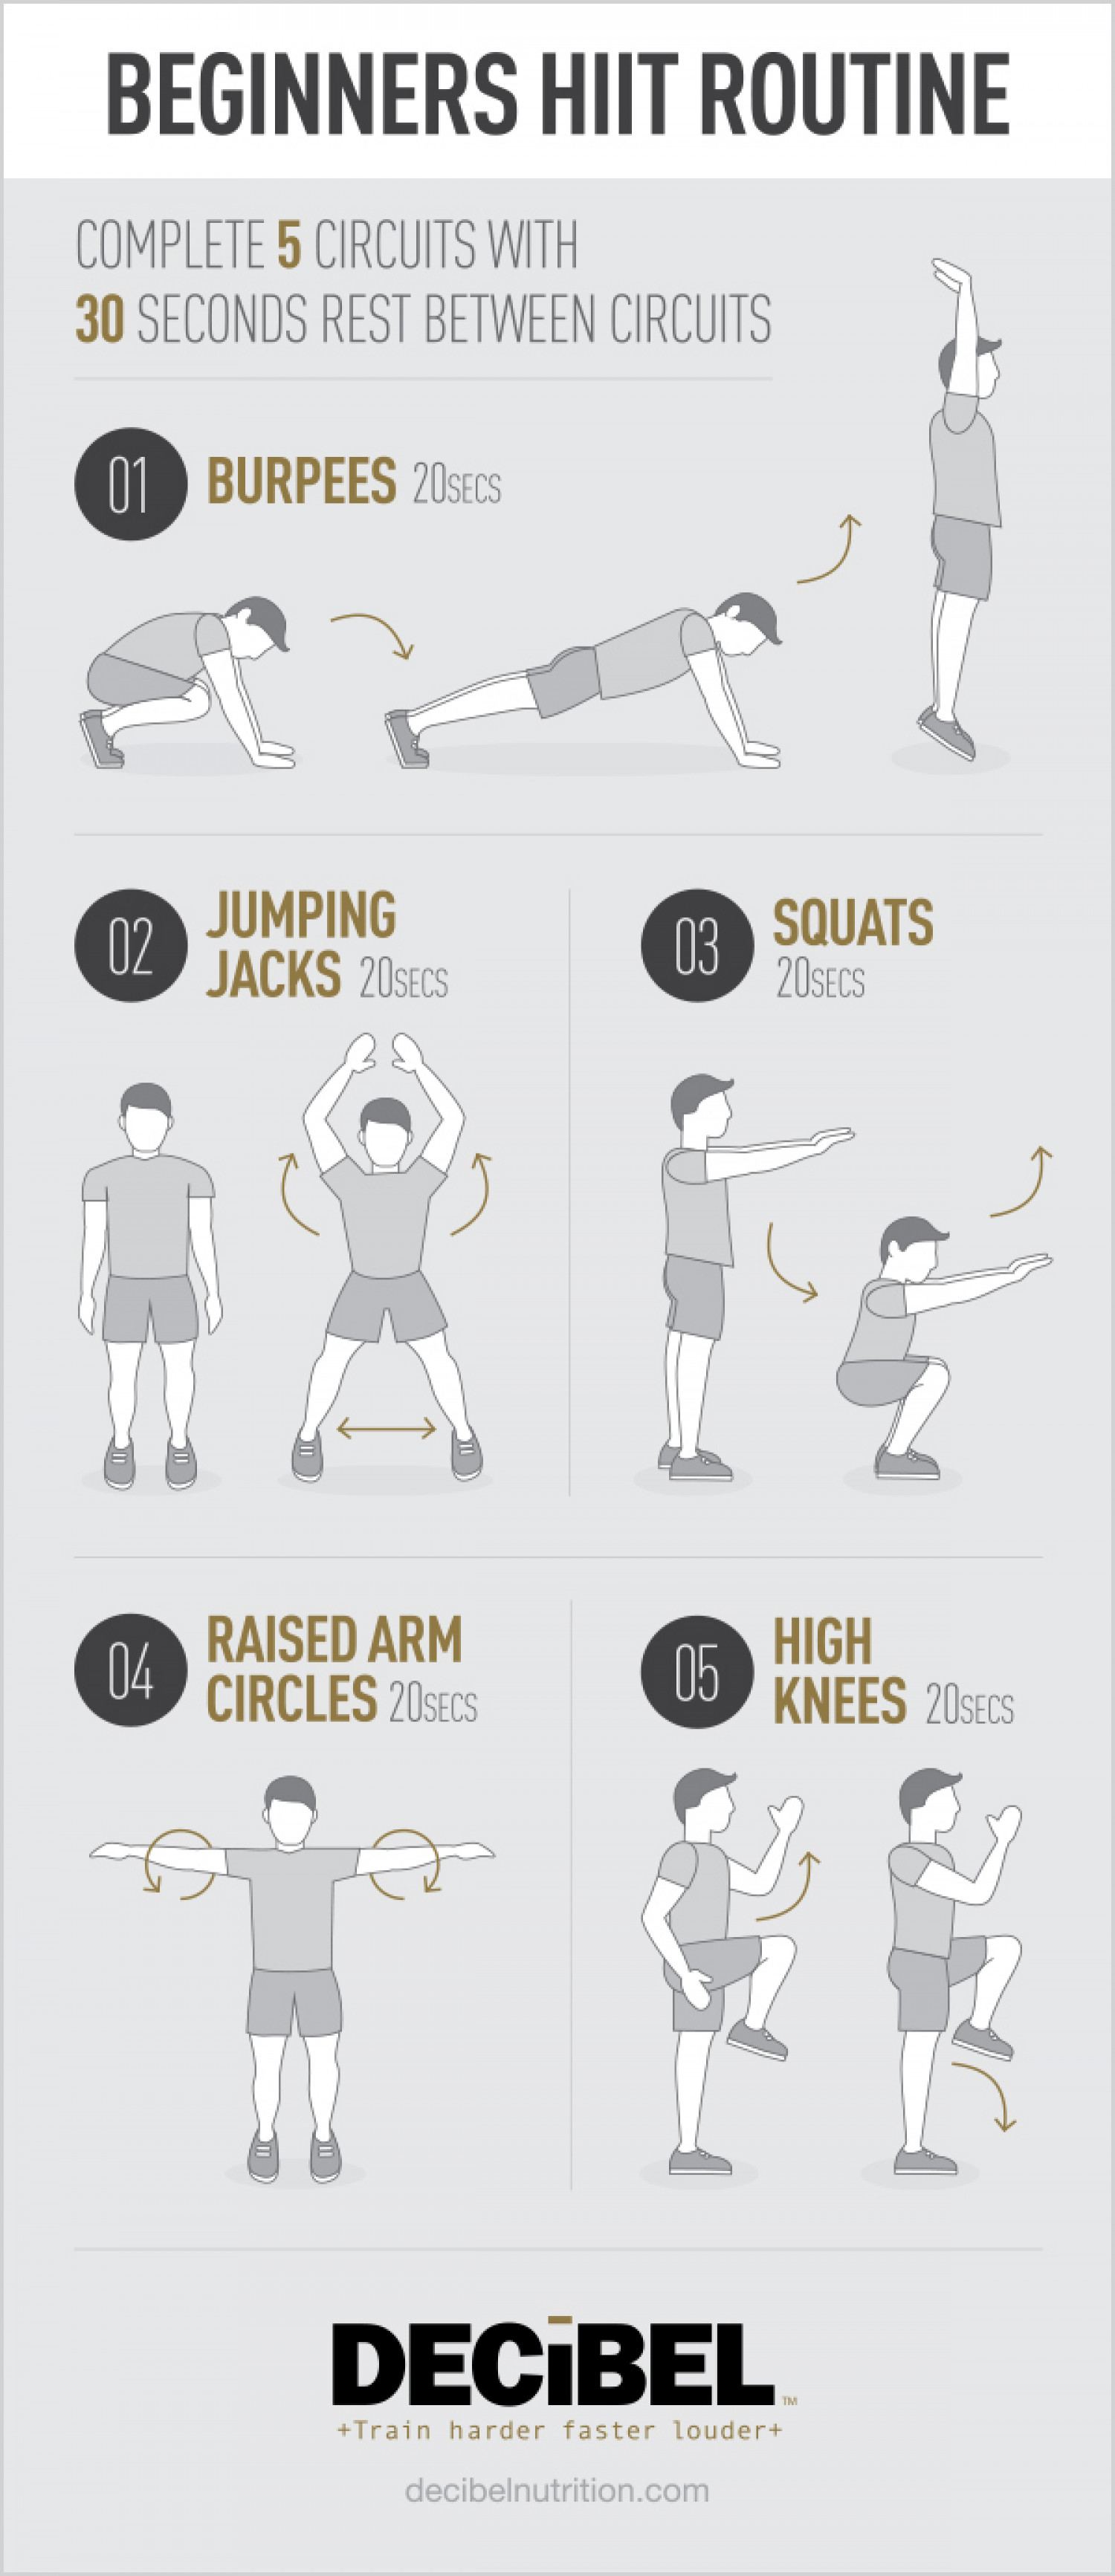 Beginners High Intensity Interval Training Routine | Visual.ly